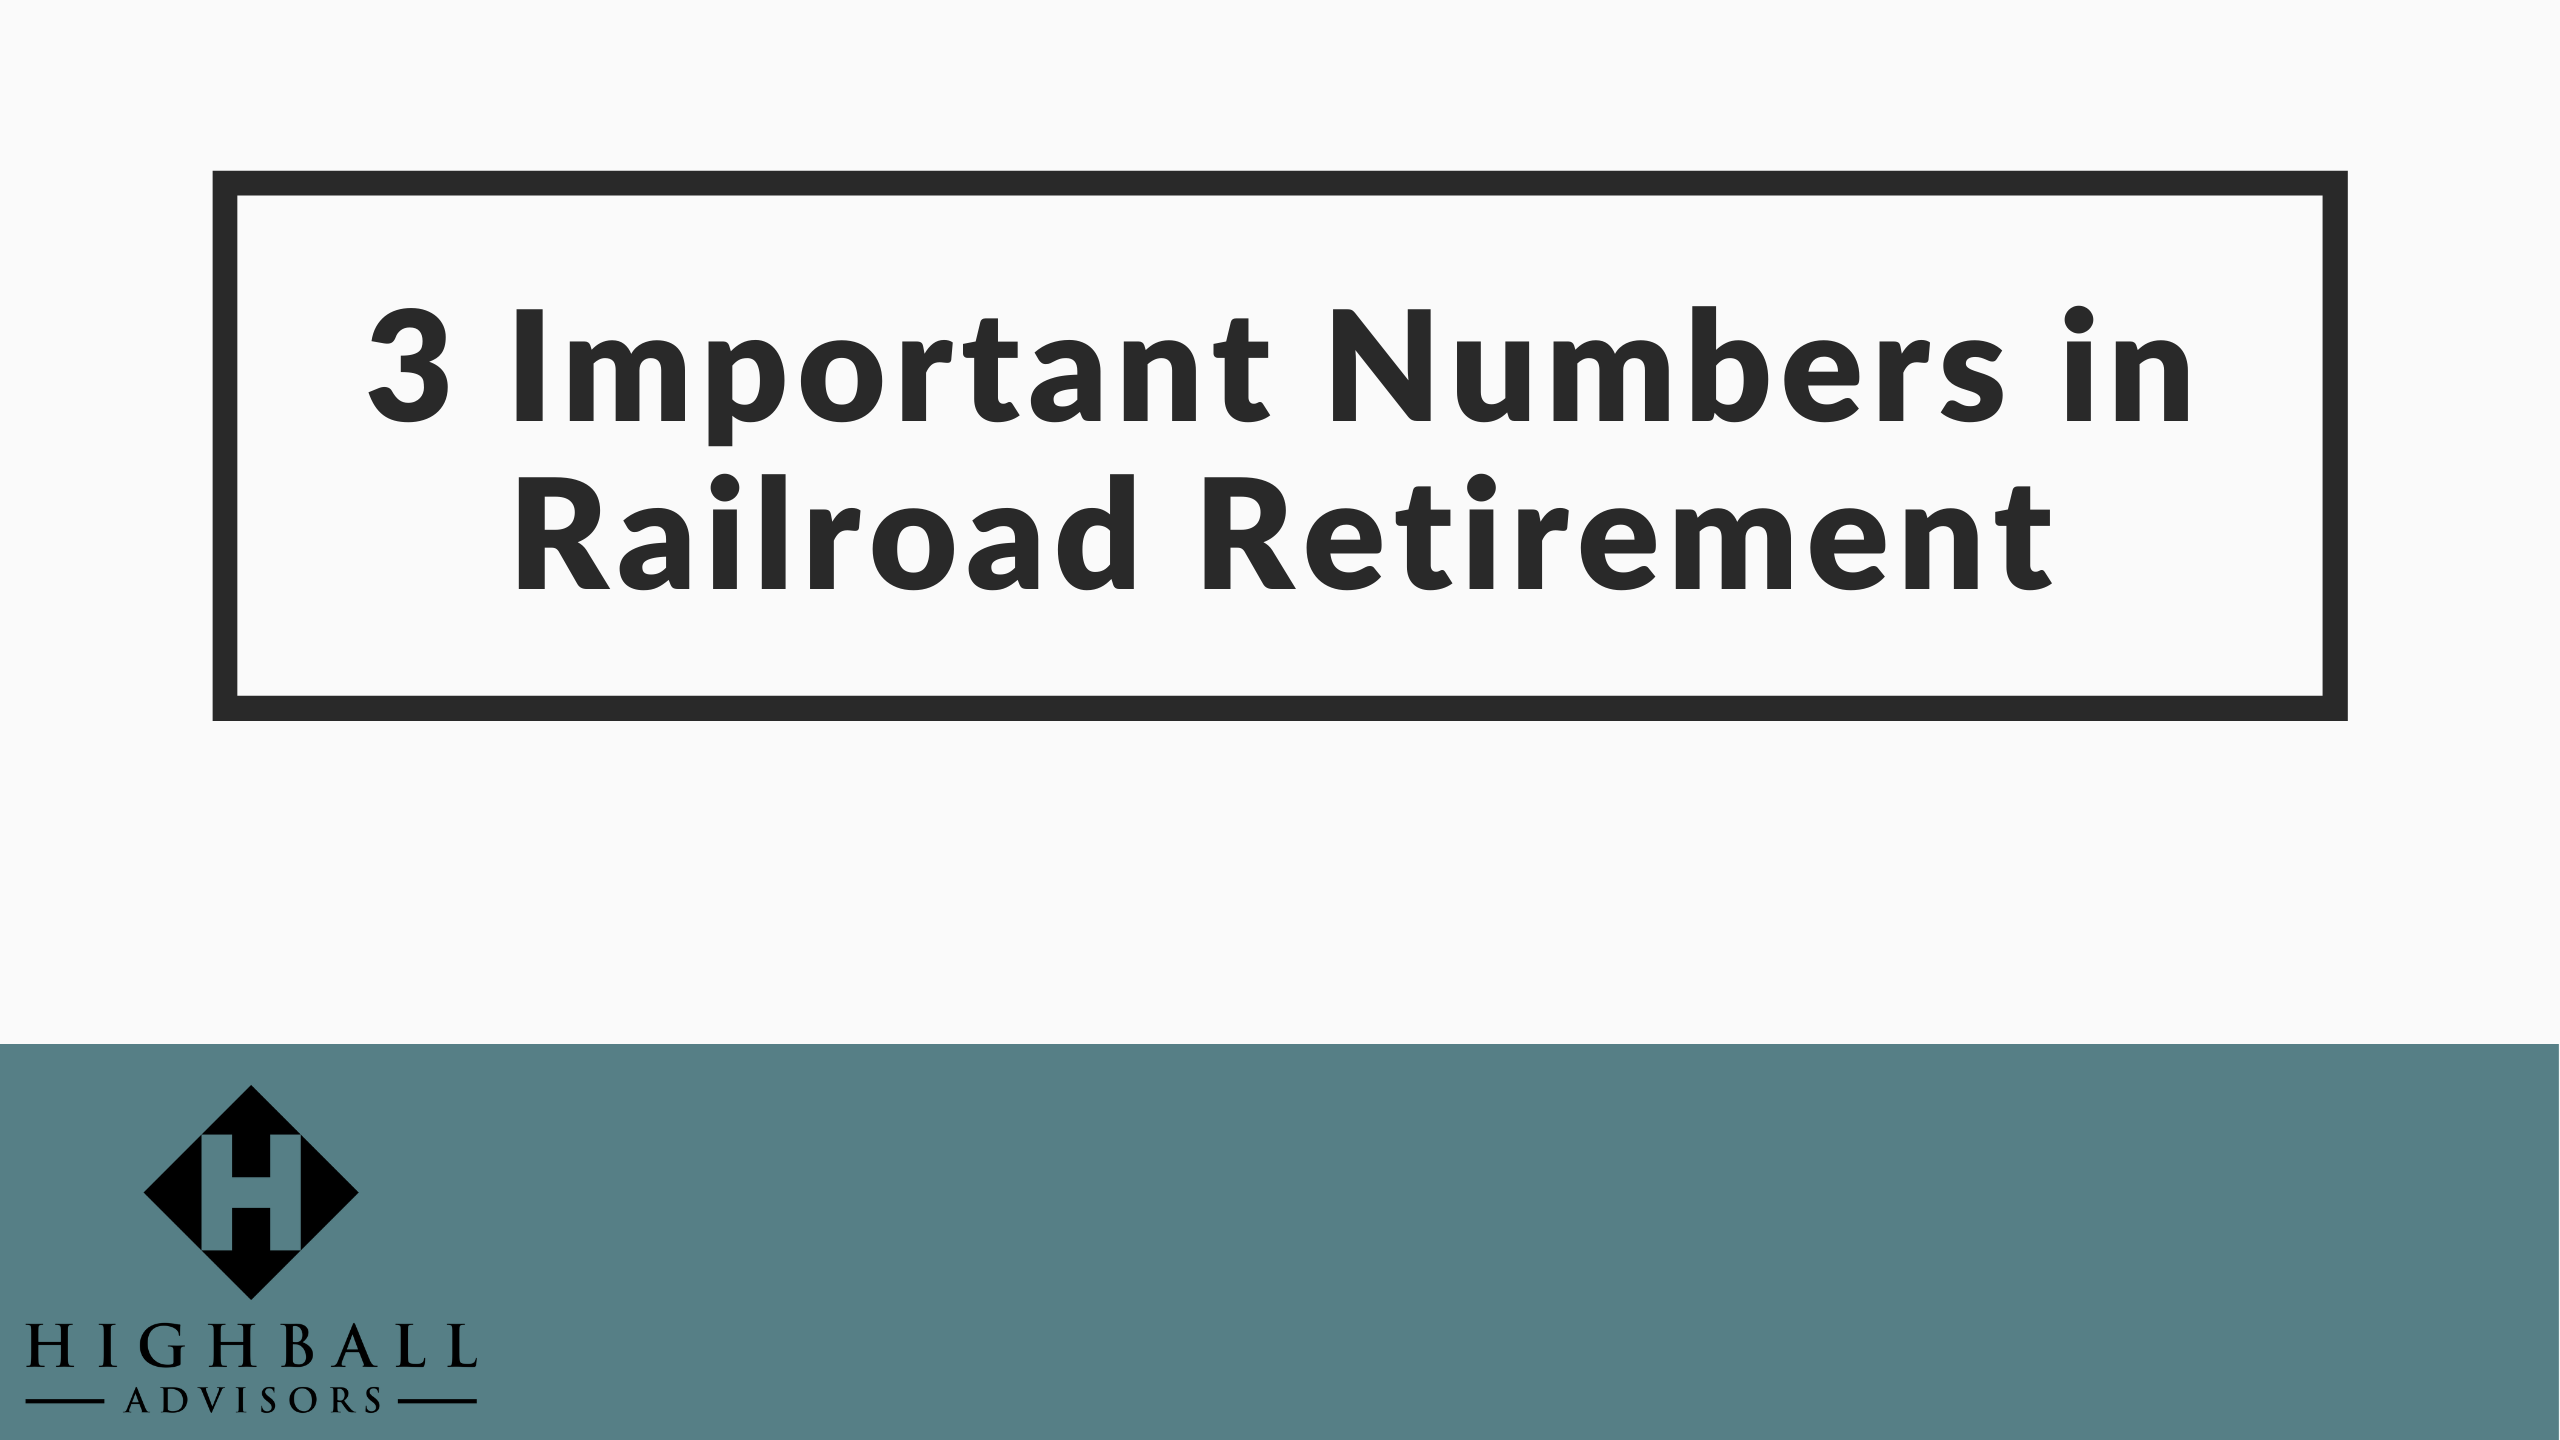 VIDEO: 3 Important Numbers in Railroad Retirement Thumbnail